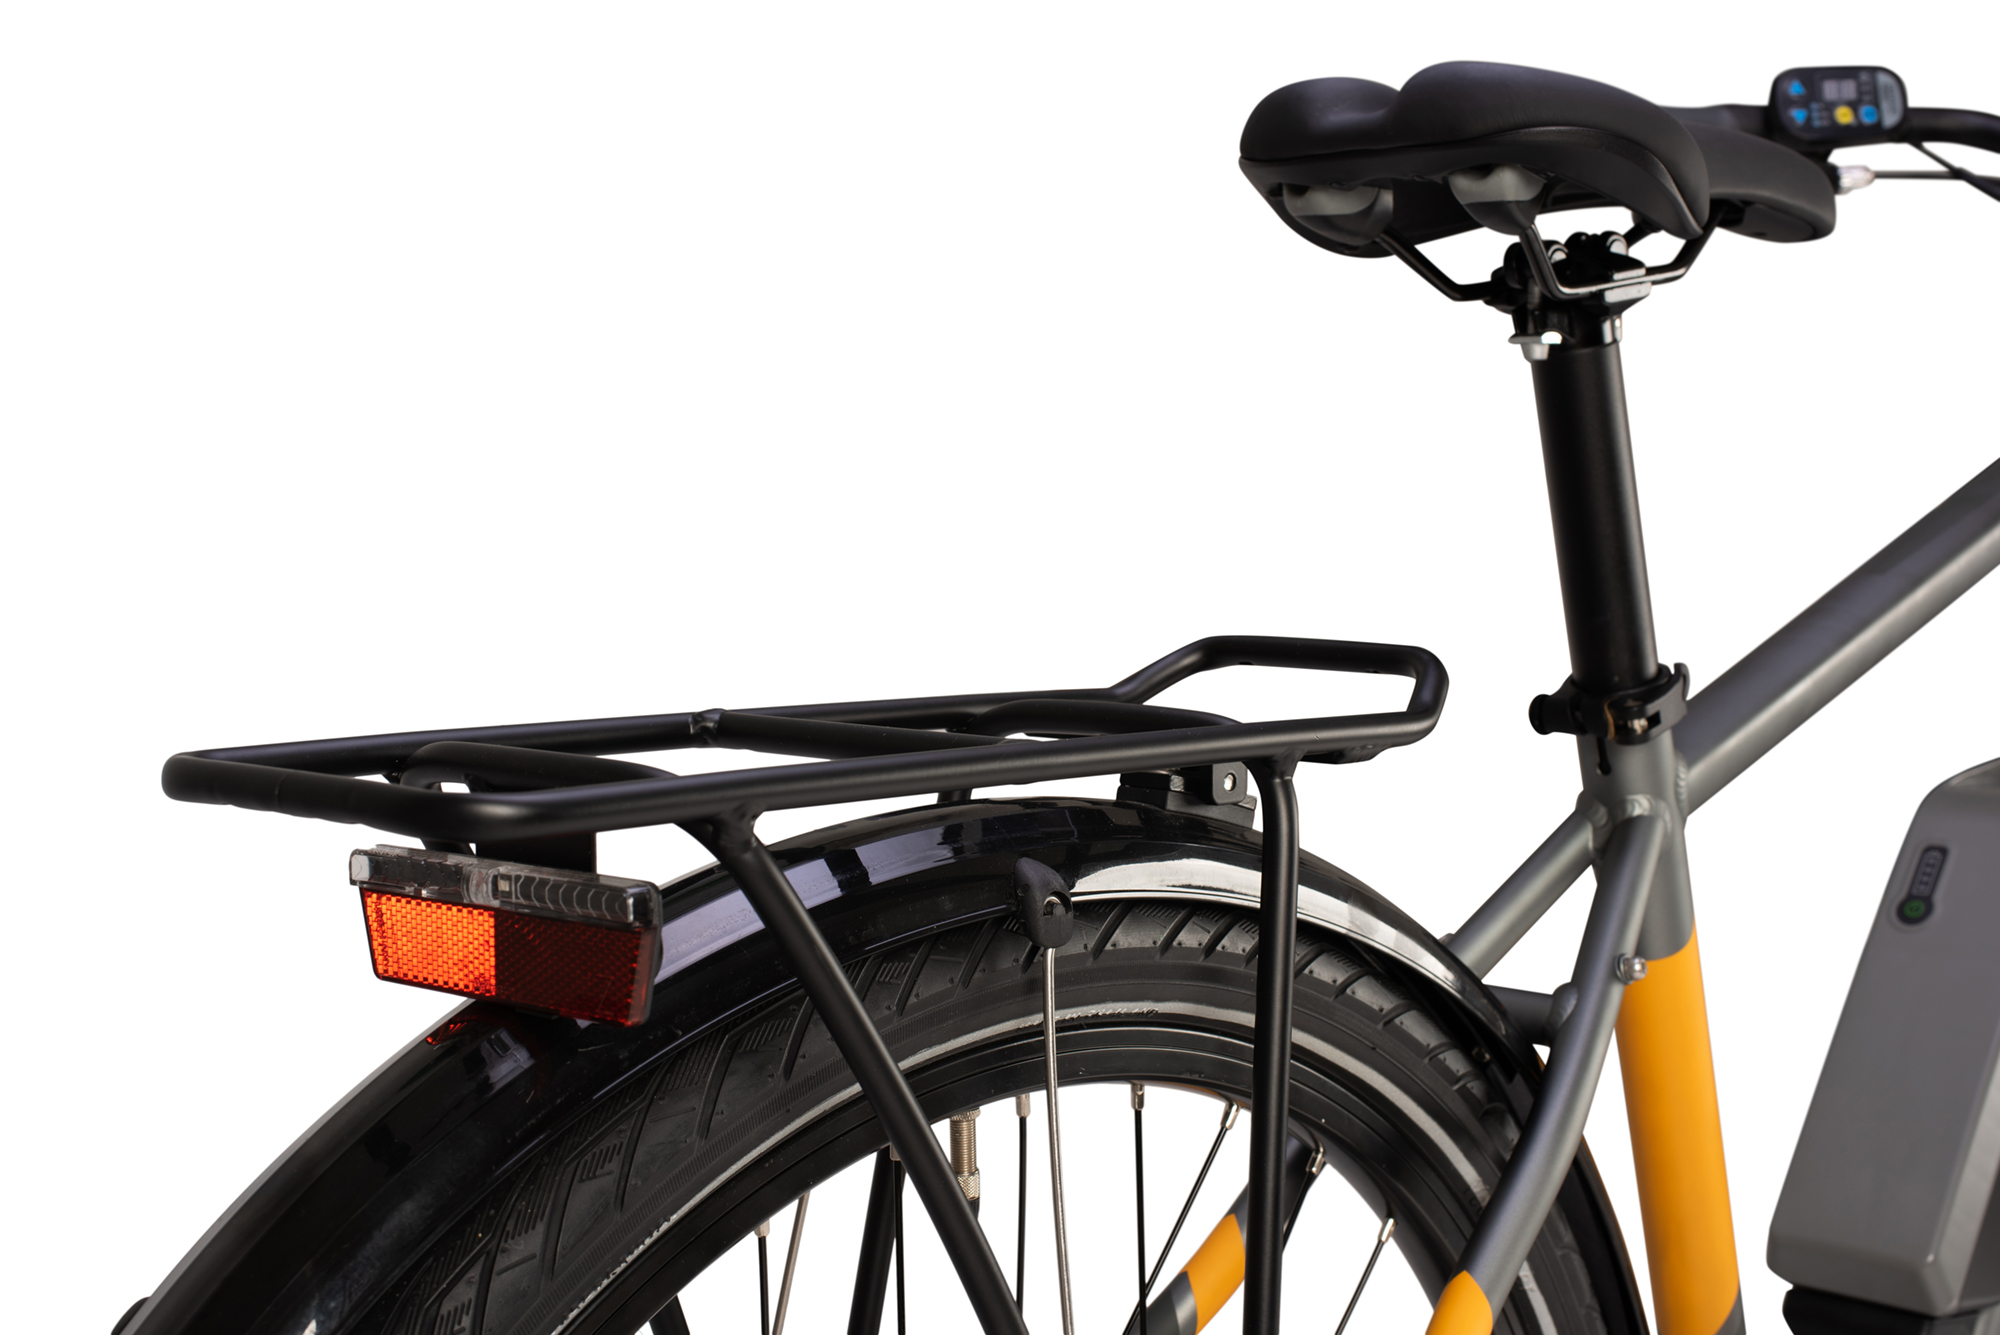 Rear luggage rack on the Raleigh Array electric bike